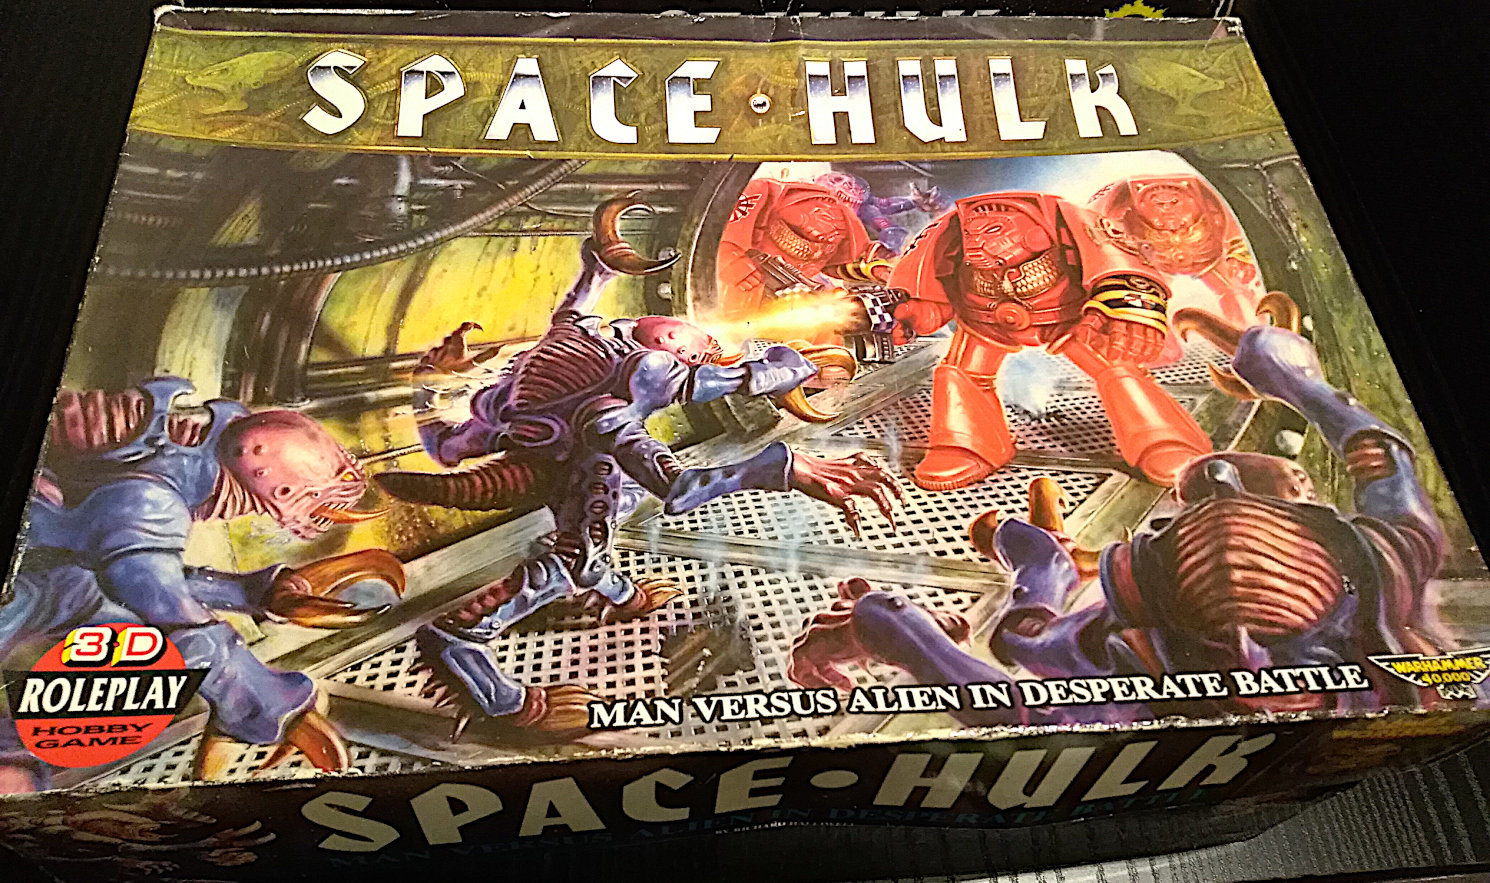 First Edition board game